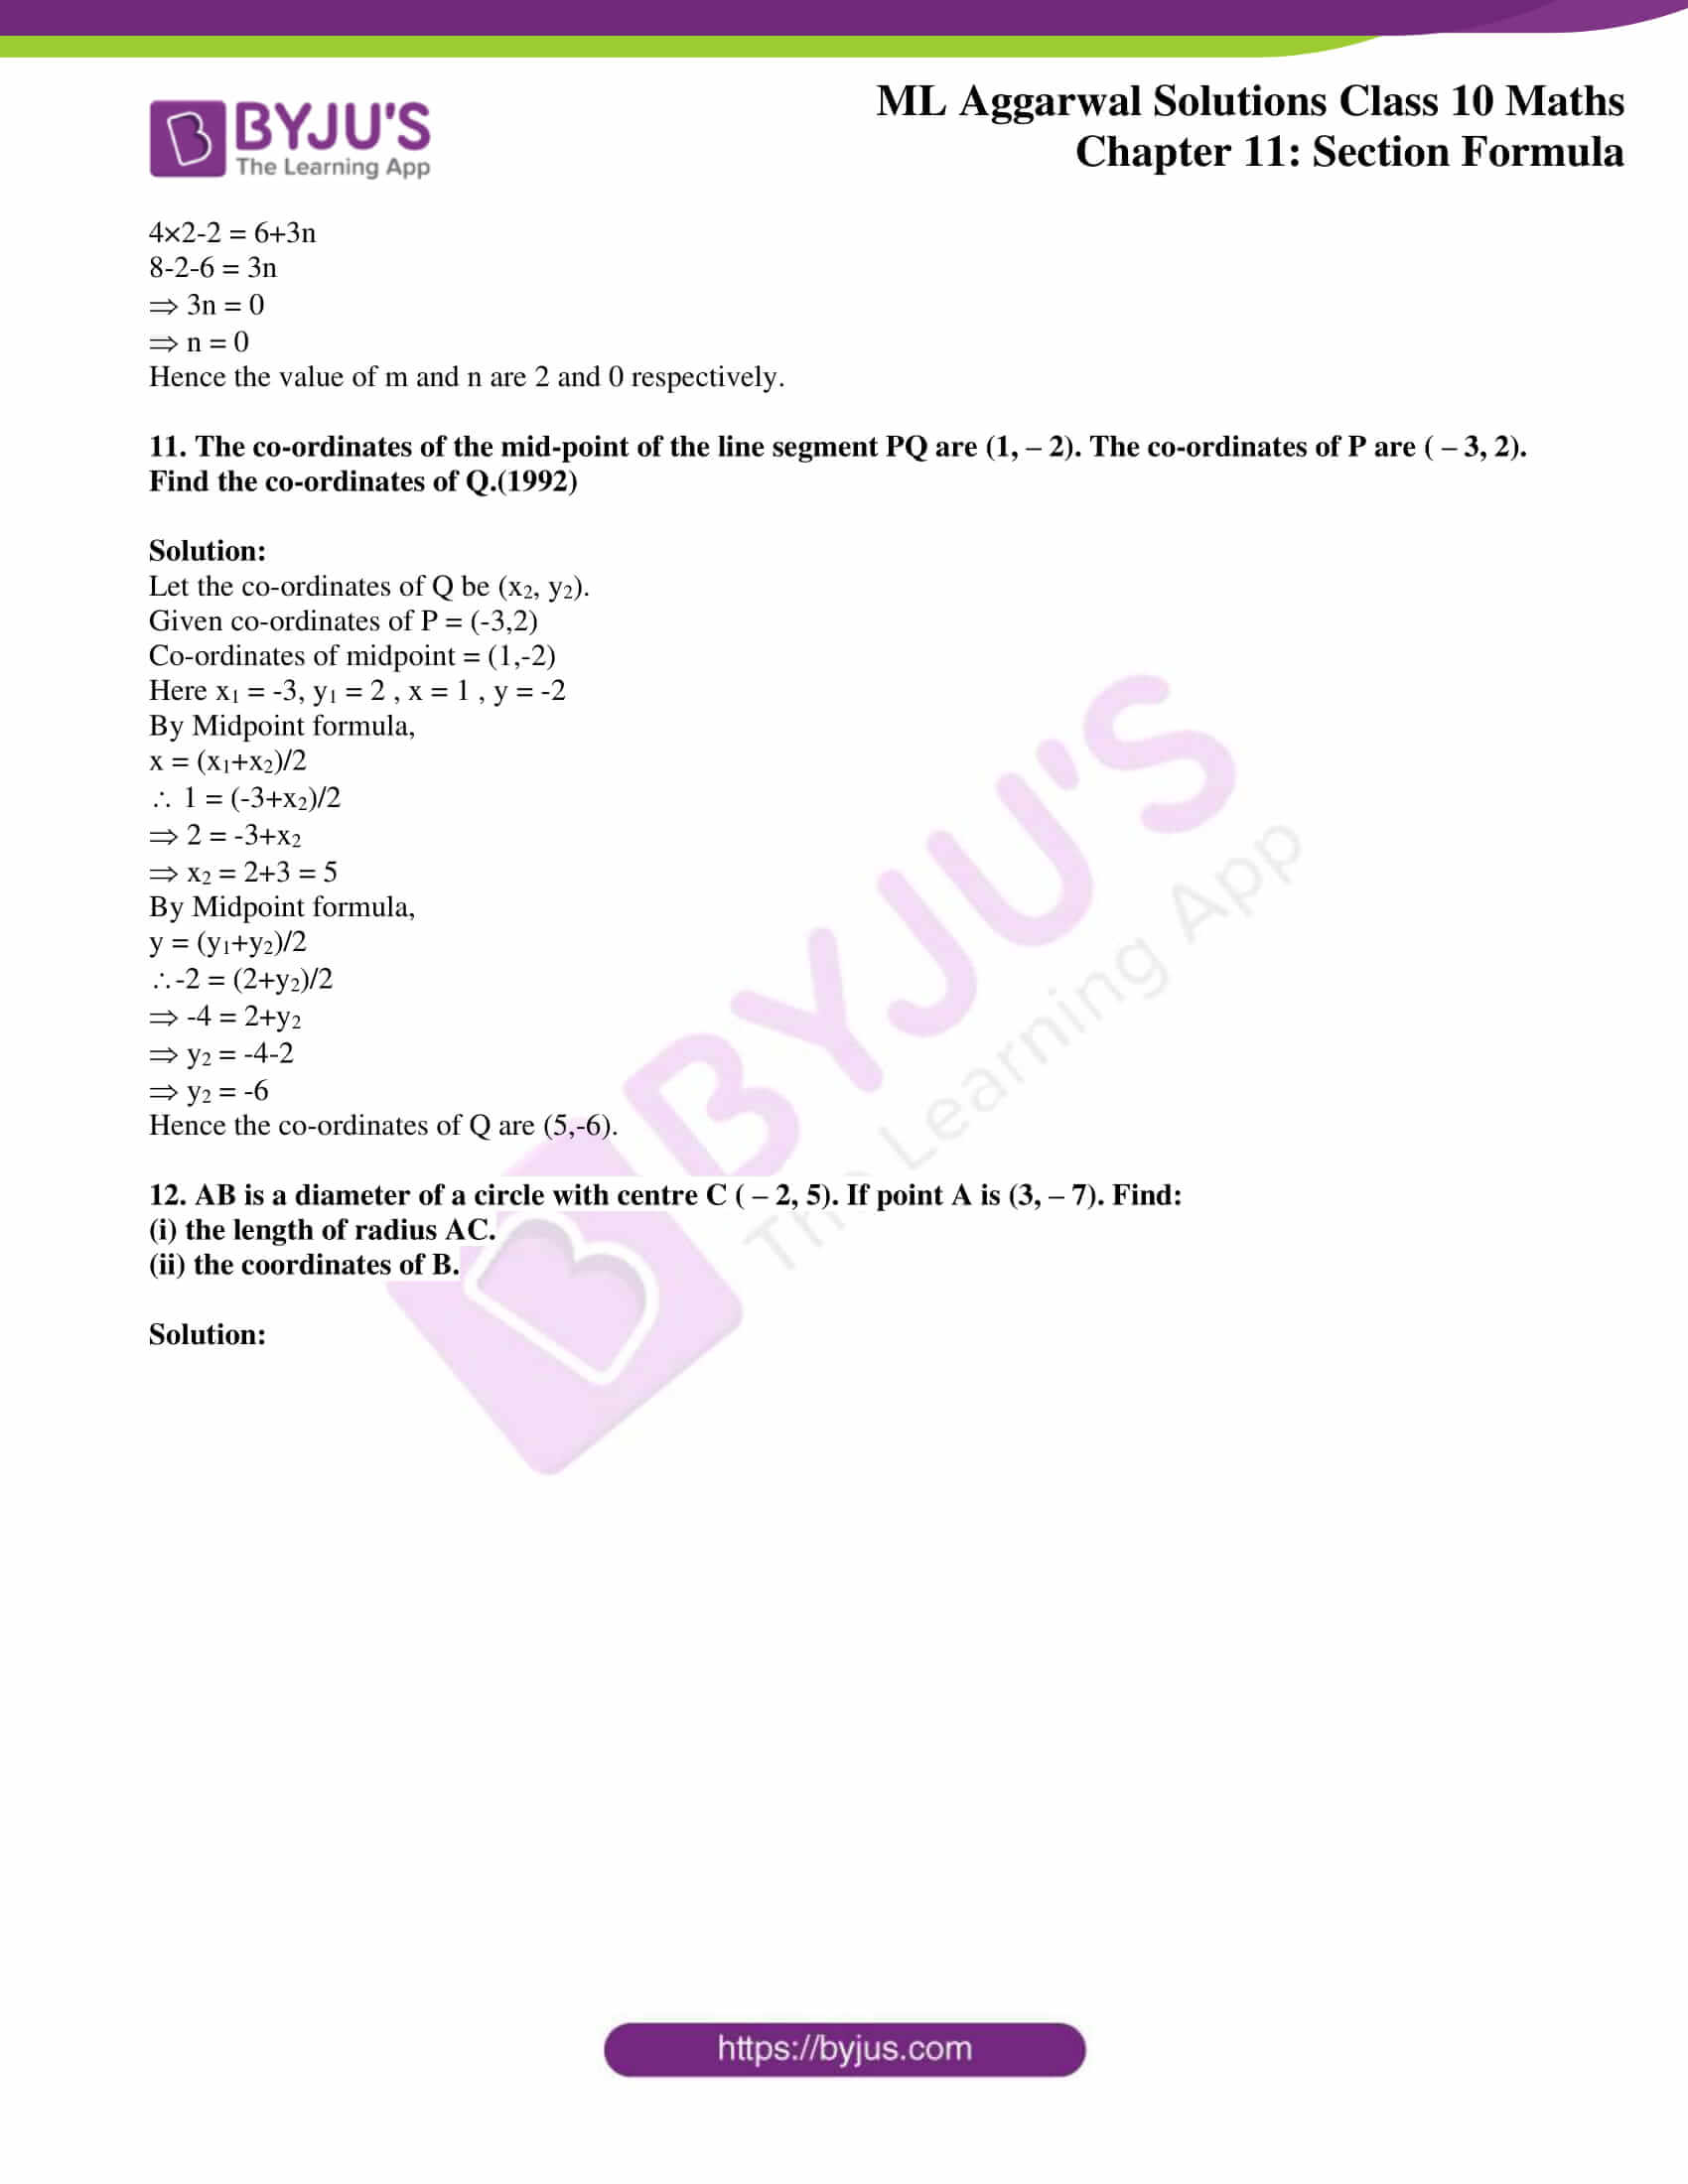 ml aggarwal solutions class 10 maths chapter 11 09